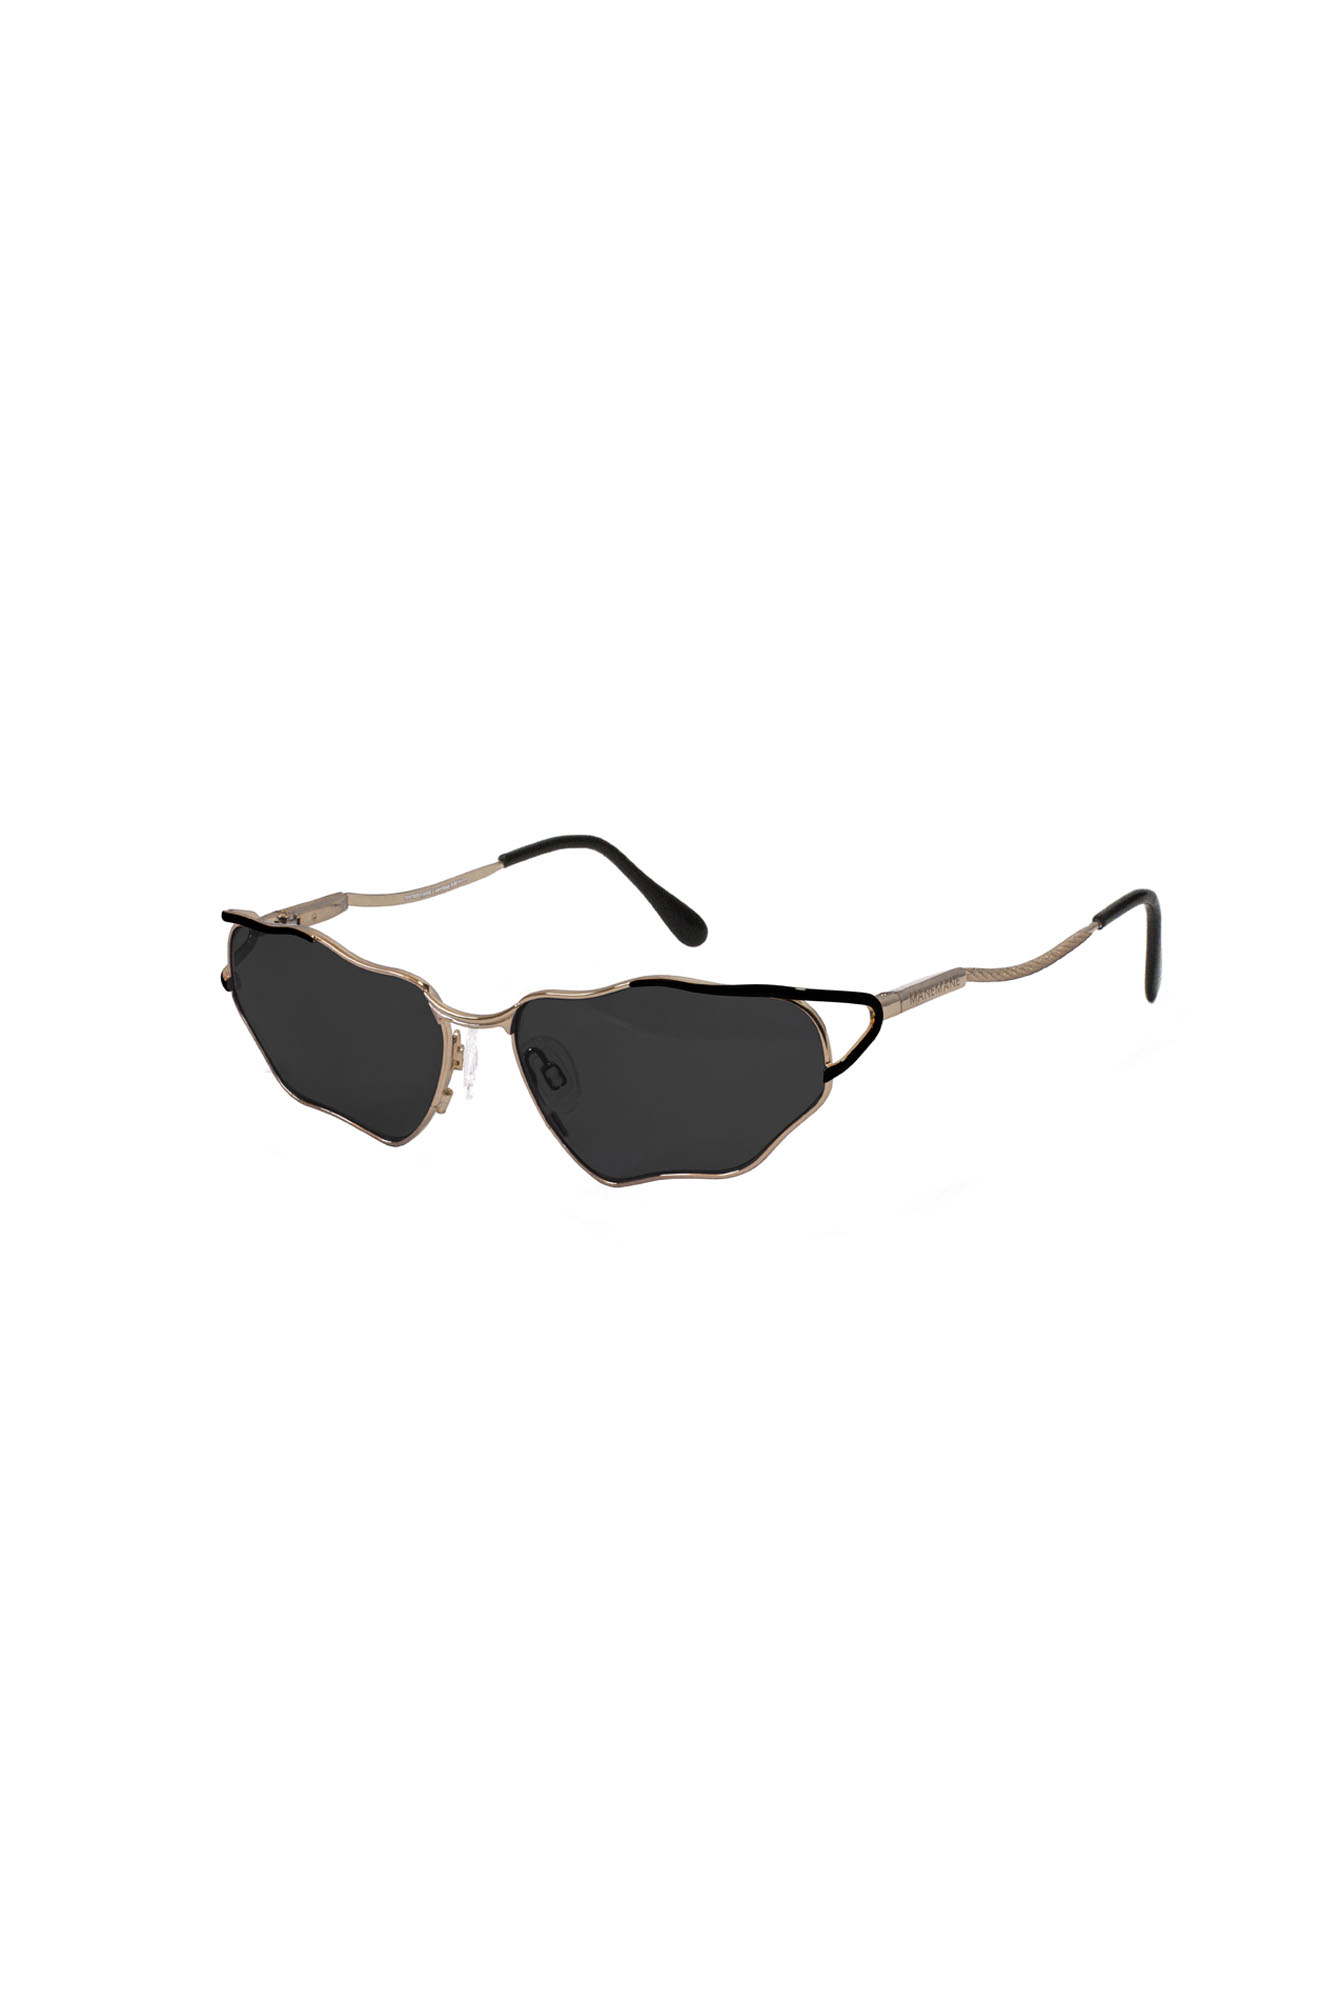 01. MANEMANE LIMITED EDITION BLACK SUNGLASSES